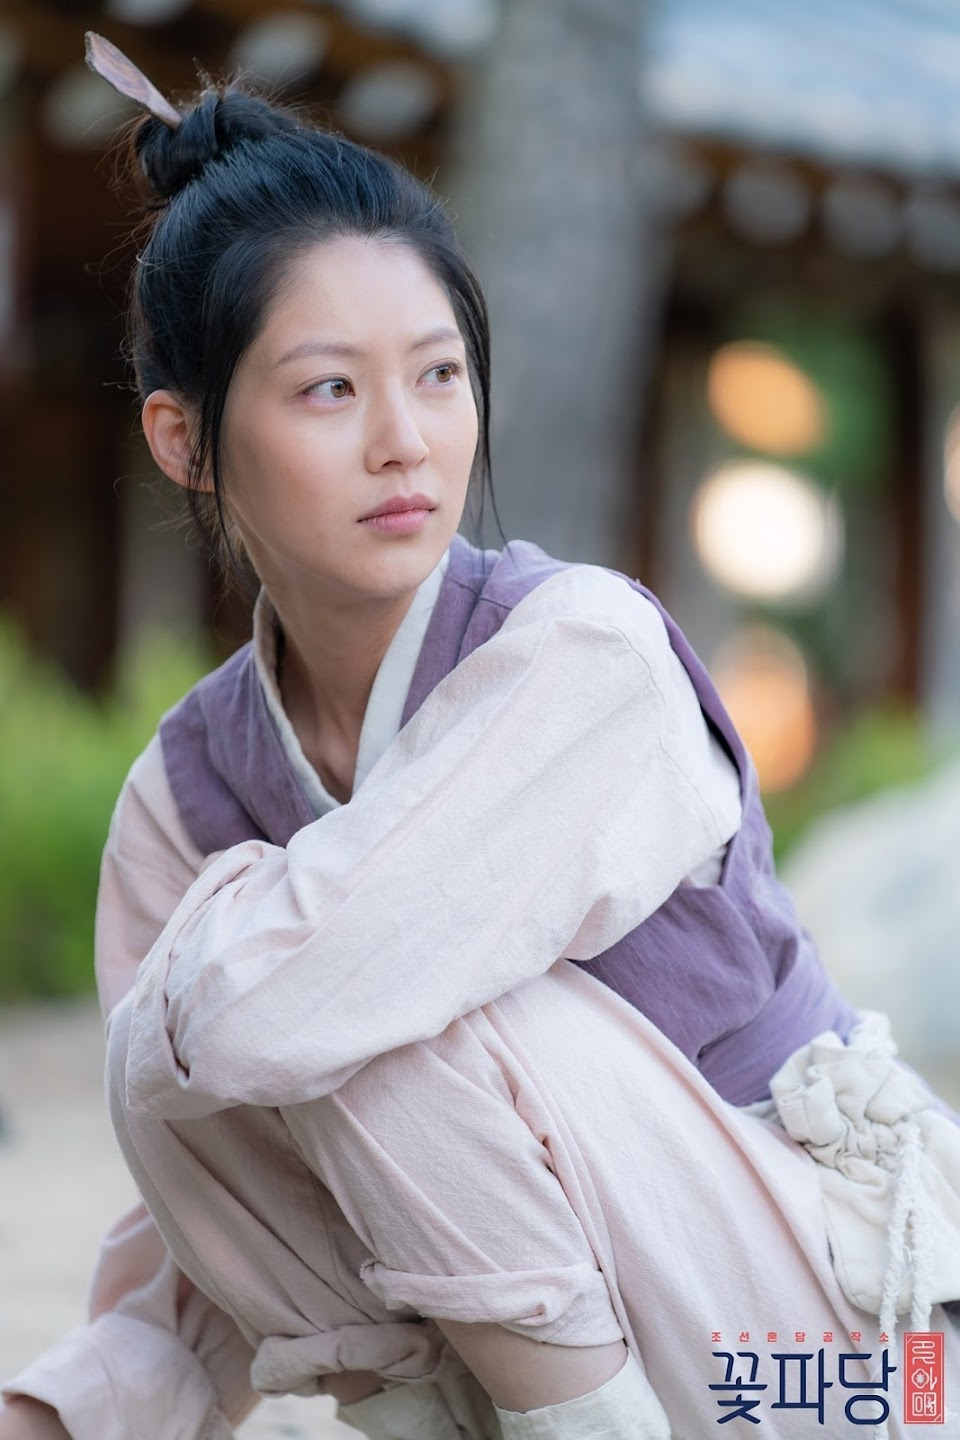 gong-seung-yeon-flower-crew-joseon-marriage-agency